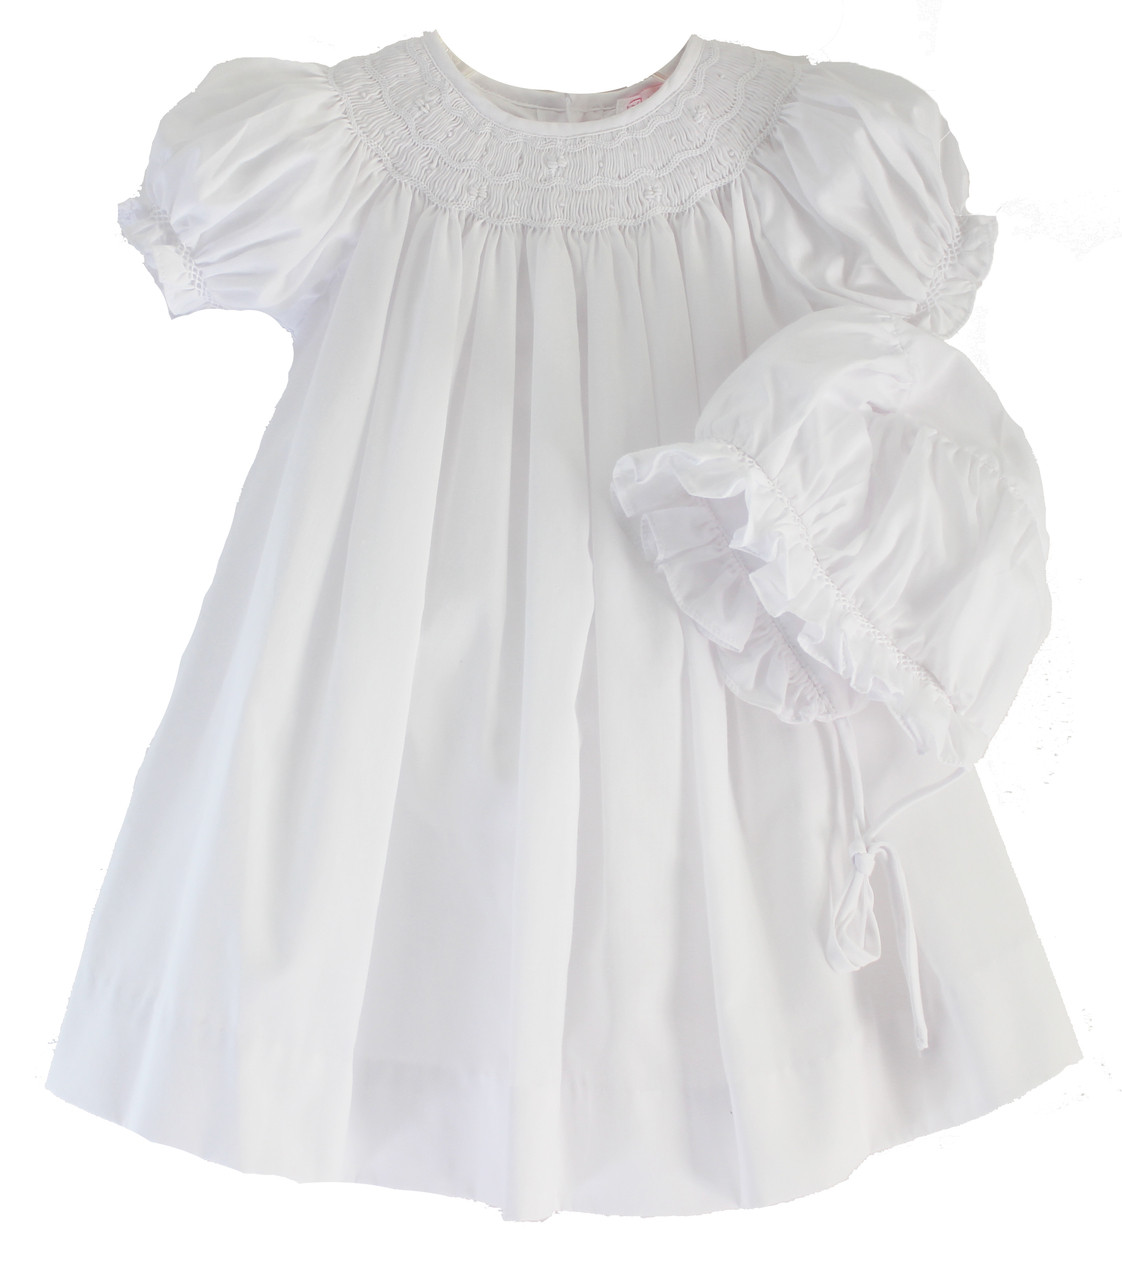 5f933afec White Smocked Bishop Dress for Baby Girl | Children's Clothing Boutique